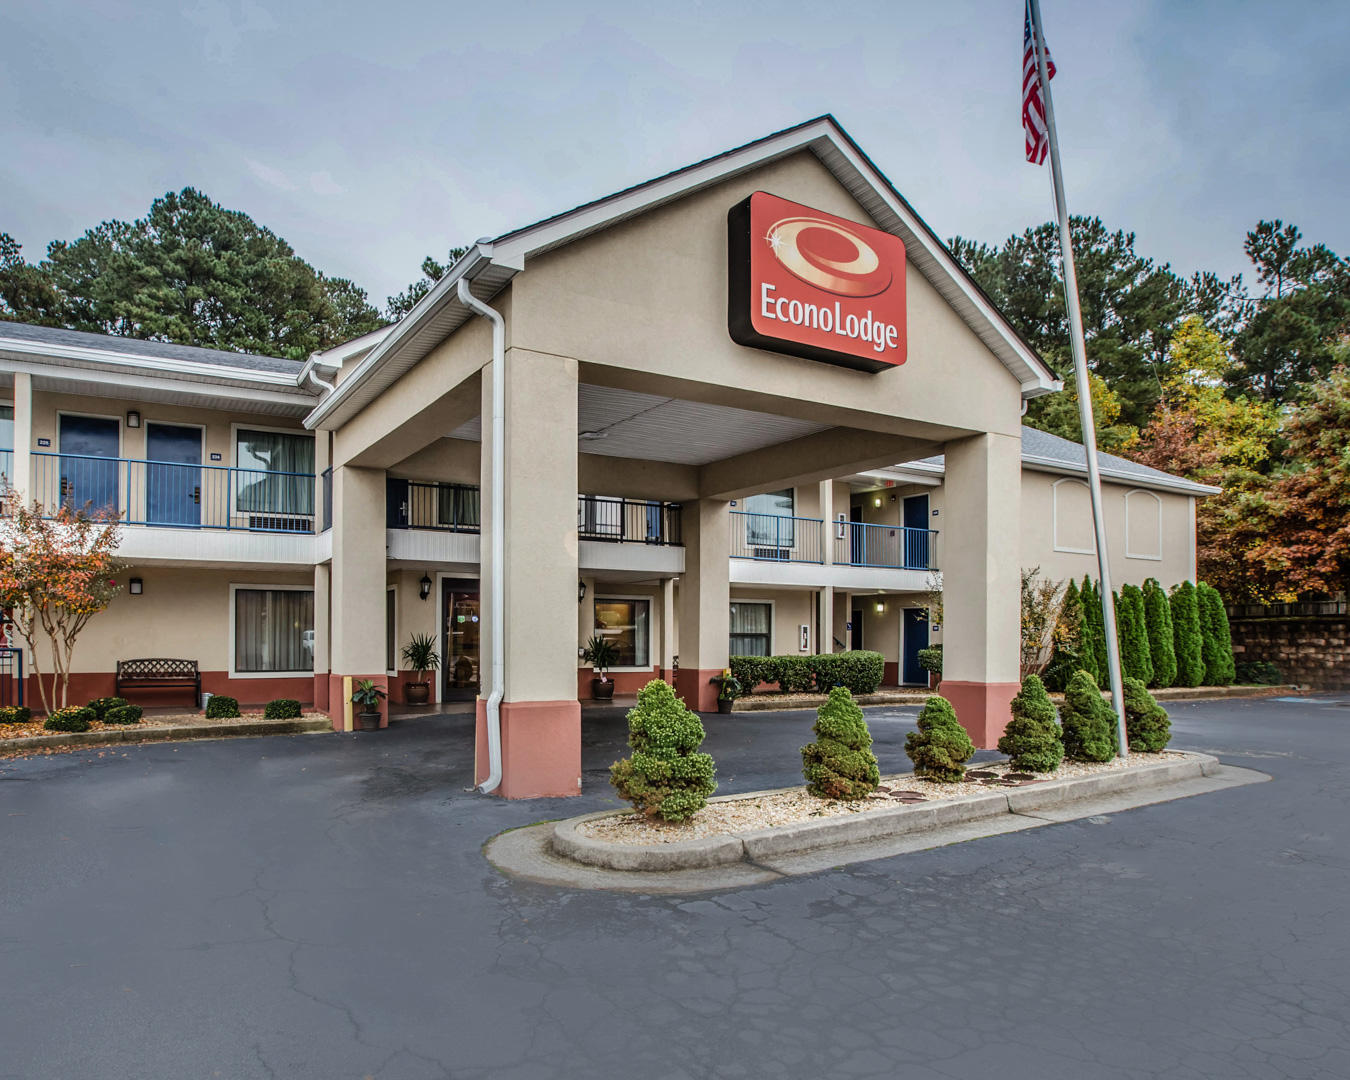 Pizza Hut Villa Rica Ga Deals